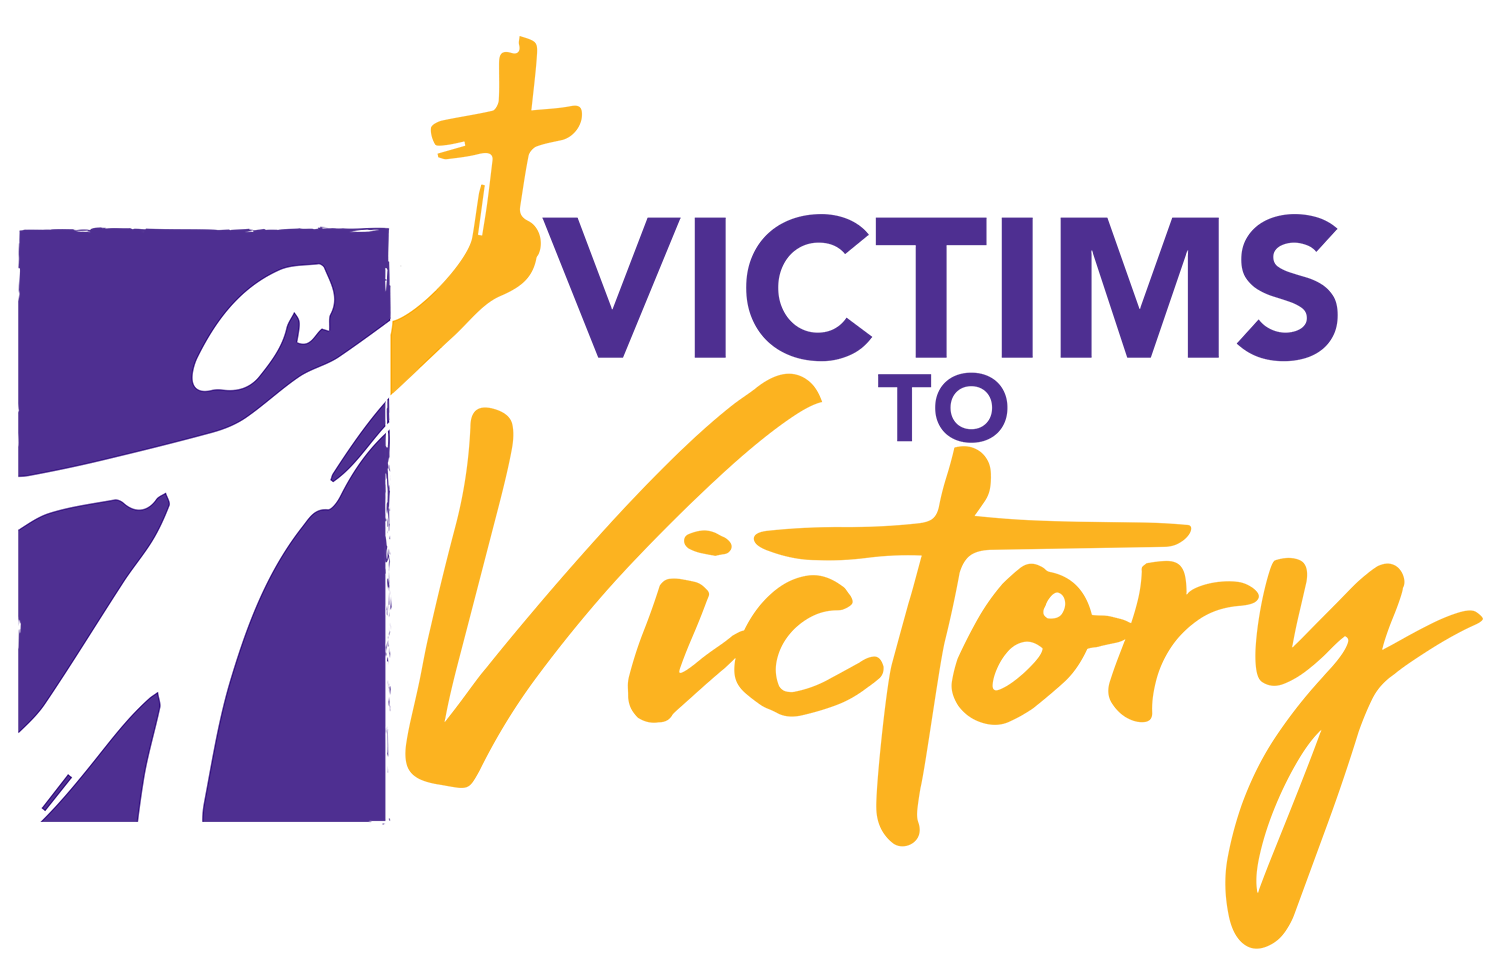 Victims To Victory